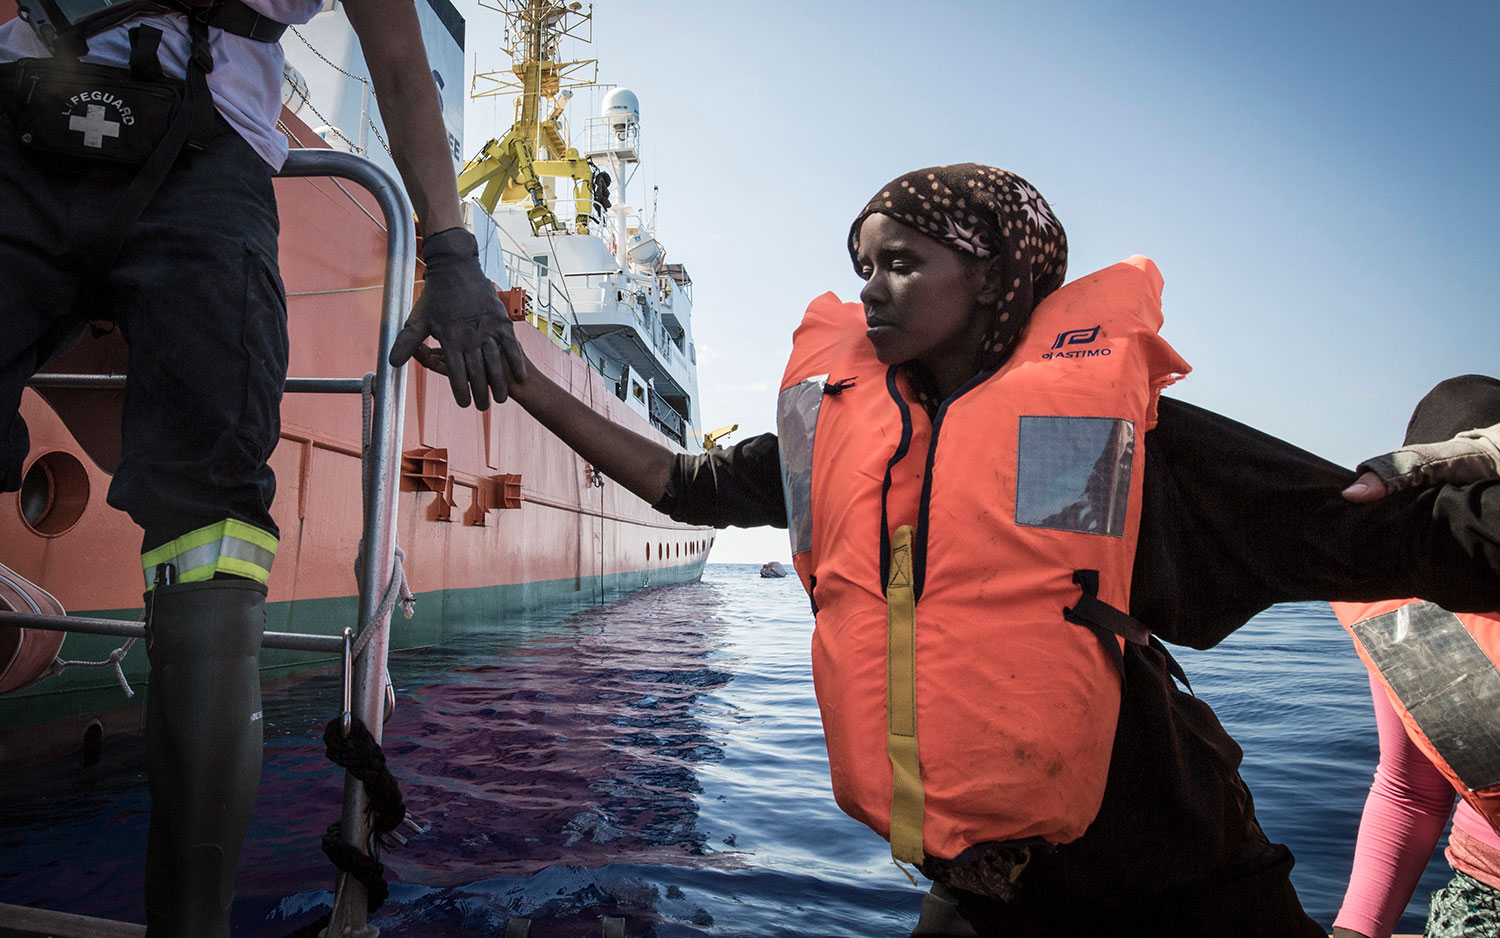 SOS MEDITERRANEE rescuers help a Somali woman off their rigid-hulled inflatable boat (RHIB) so she can board the Aquarius. October 11, 2017.